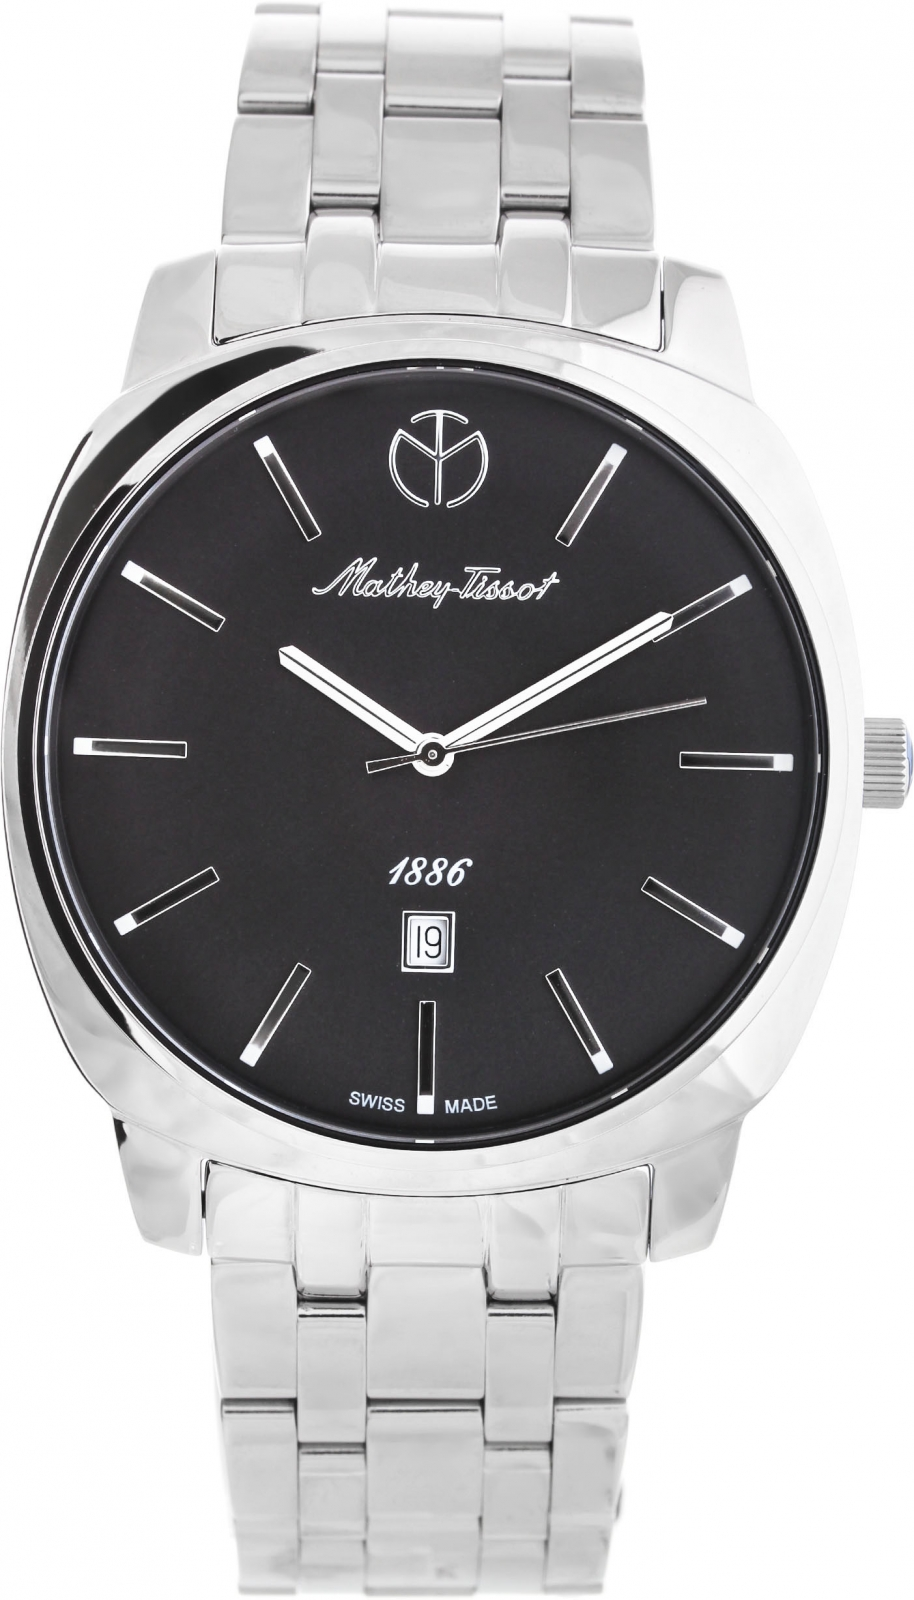 Mathey-Tissot Smart H6940MAN mathey tissot h1886ai